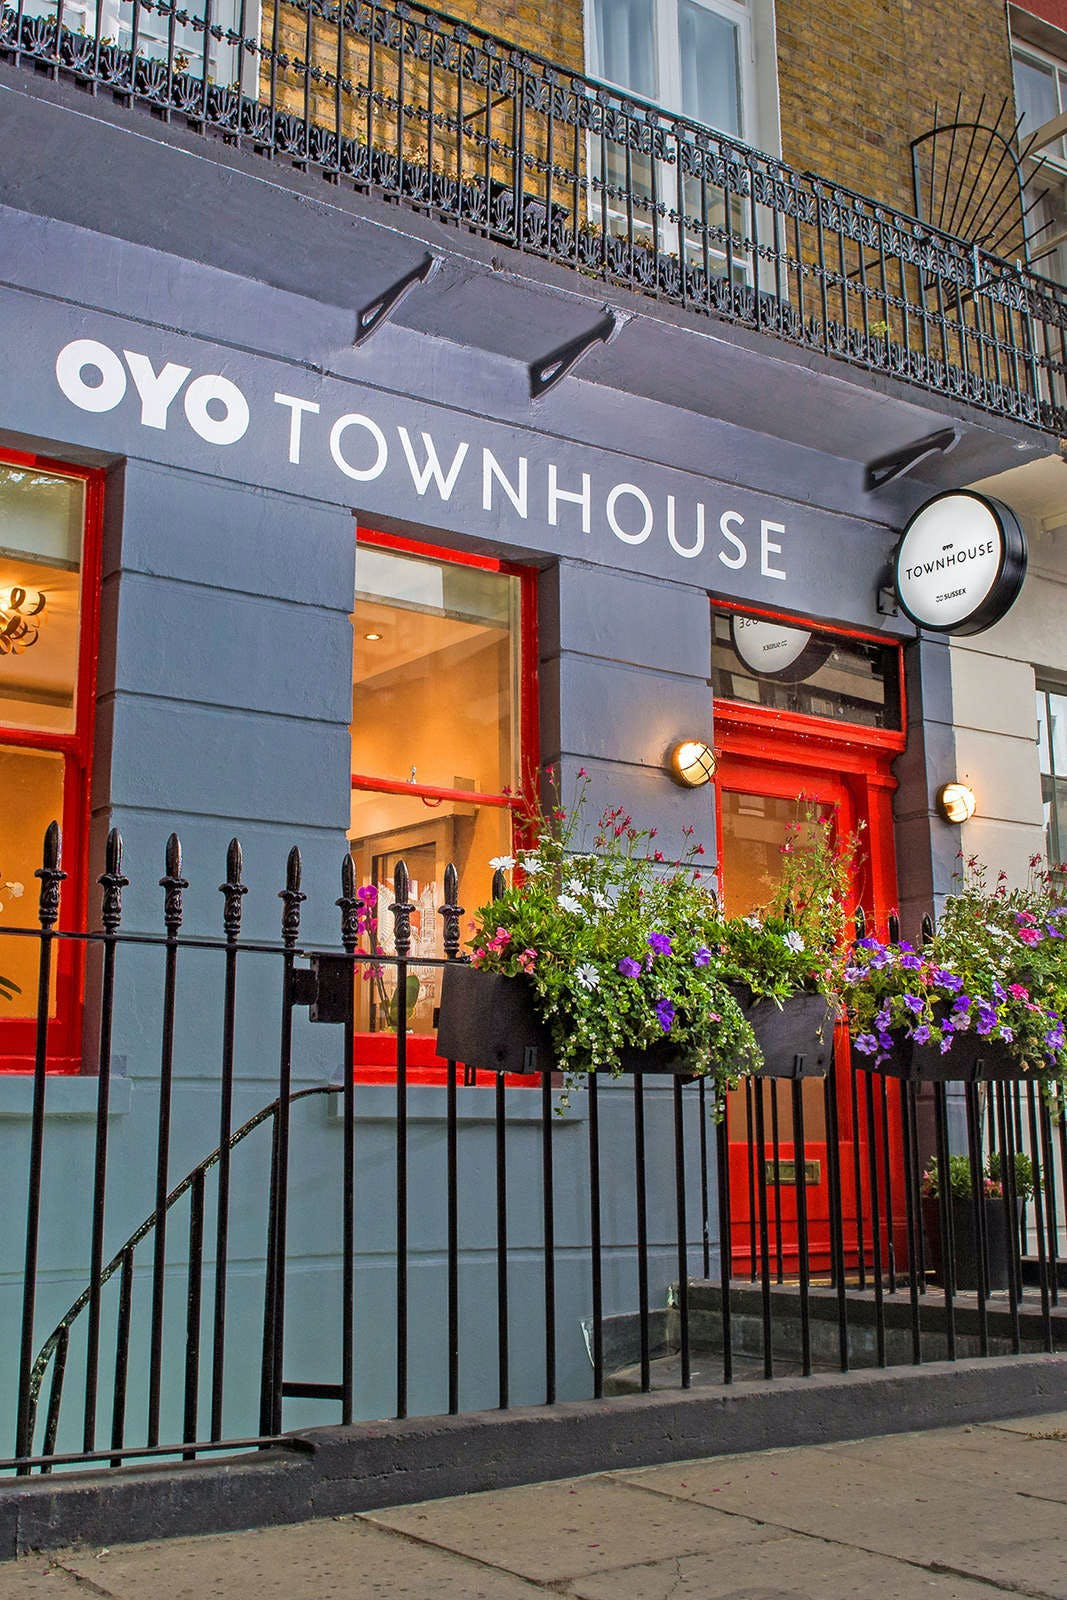 OYO Townhouse 30 Sussex